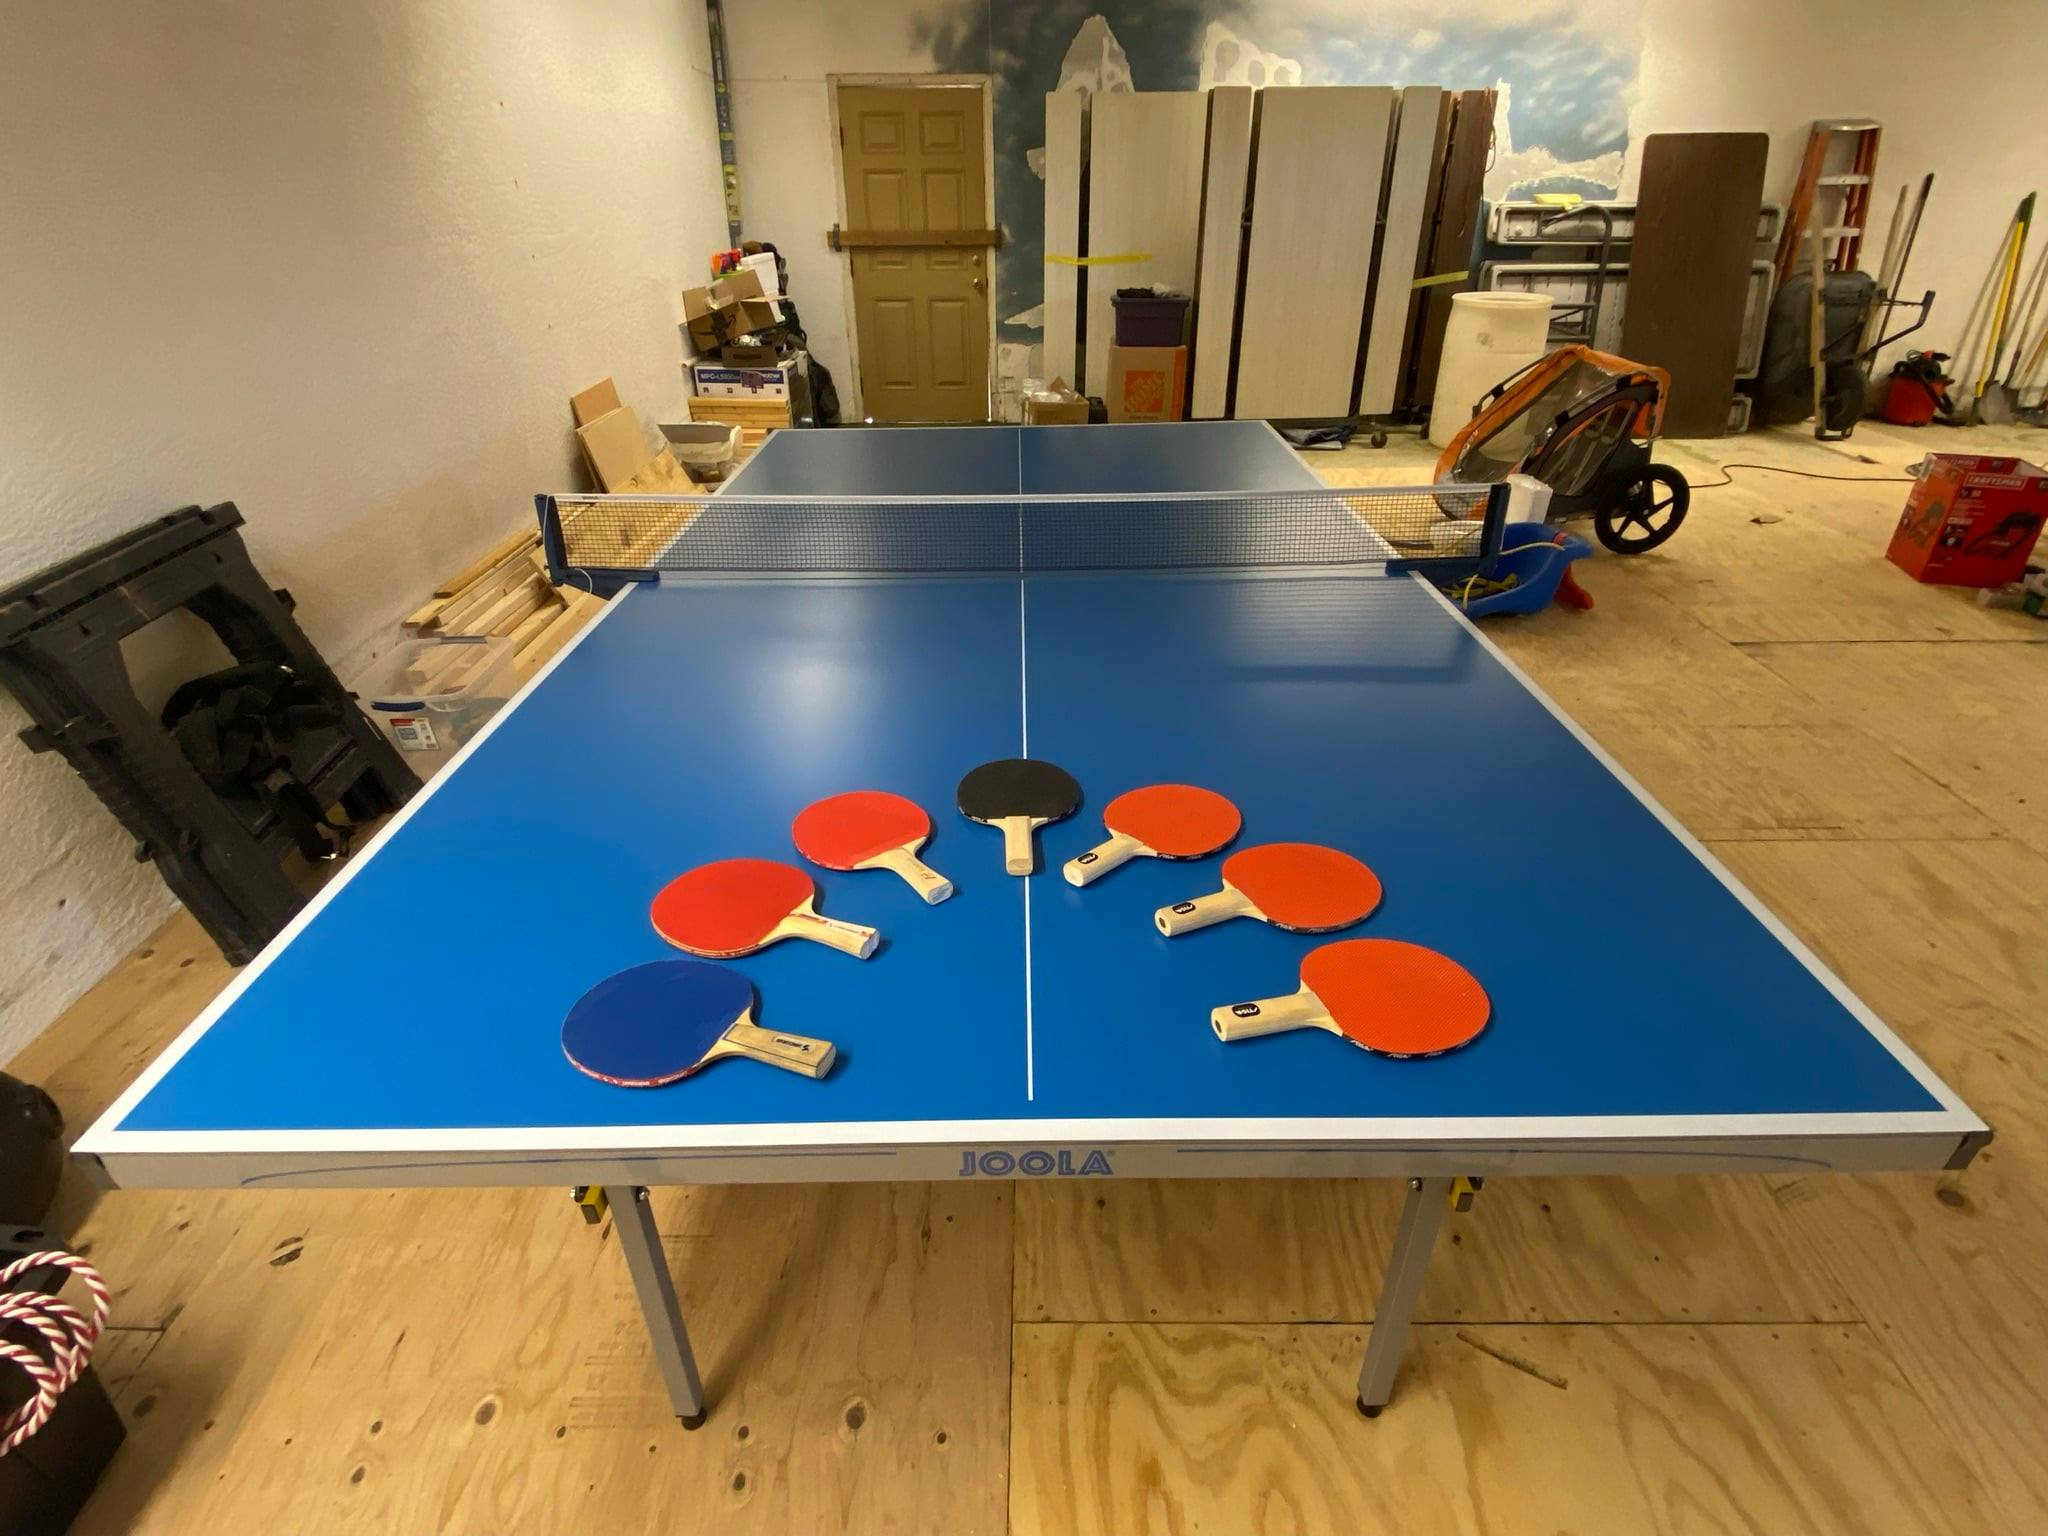 Can you use an outdoor table tennis table indoors? - YES!